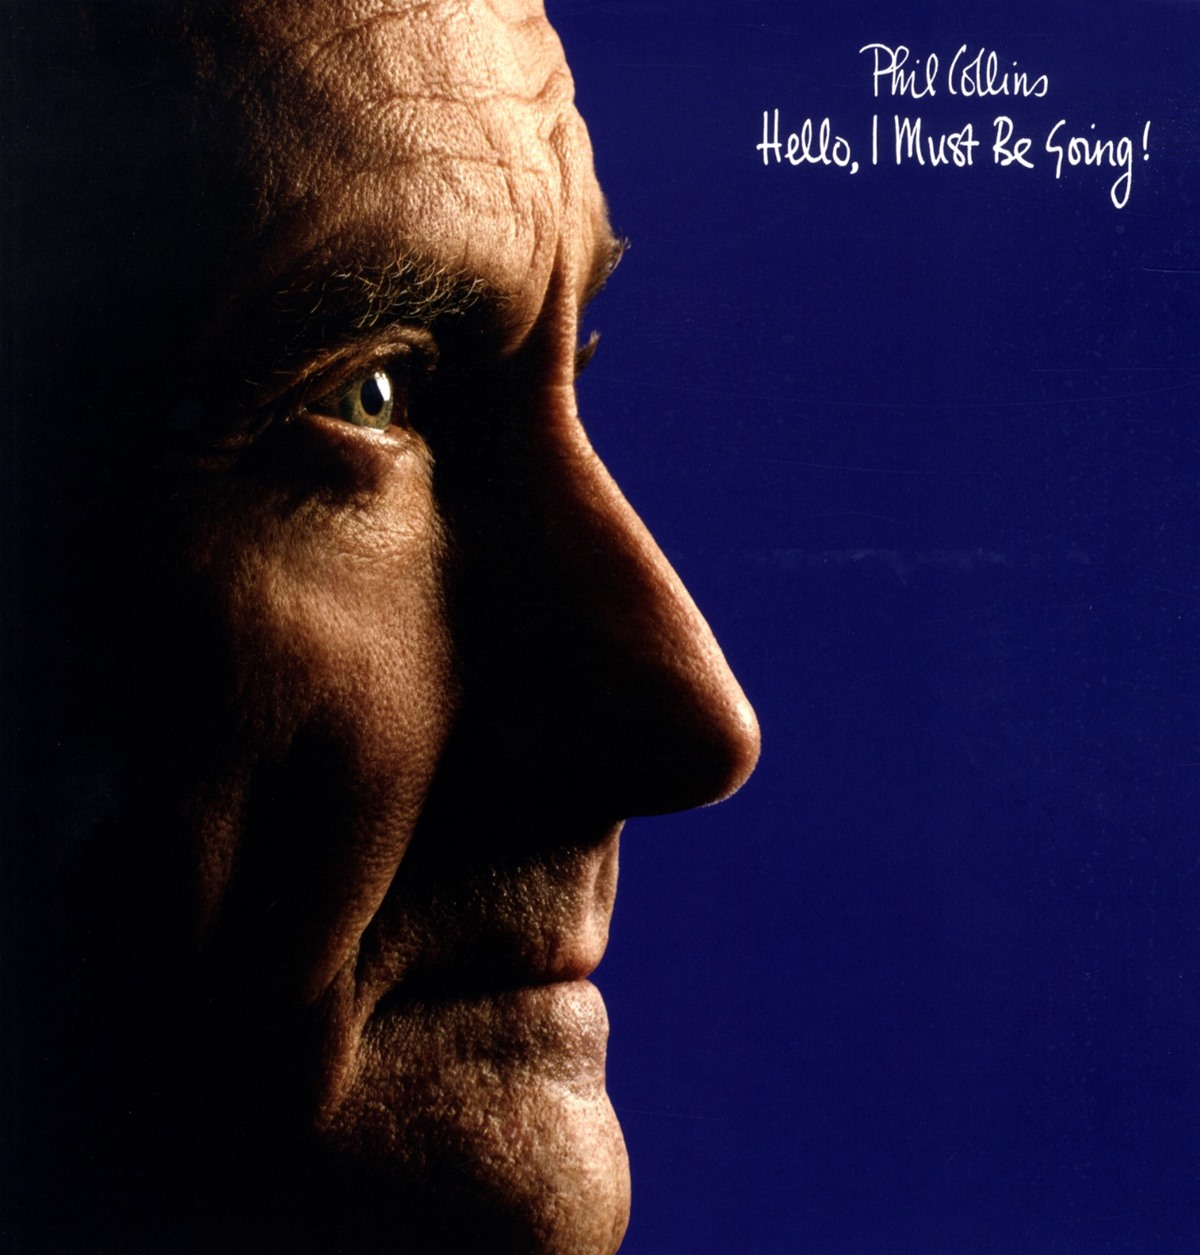 Hello, I Must Be Going! - Phil Collins - Musik - Warner Music - 0081227952099 - 26/2-2016